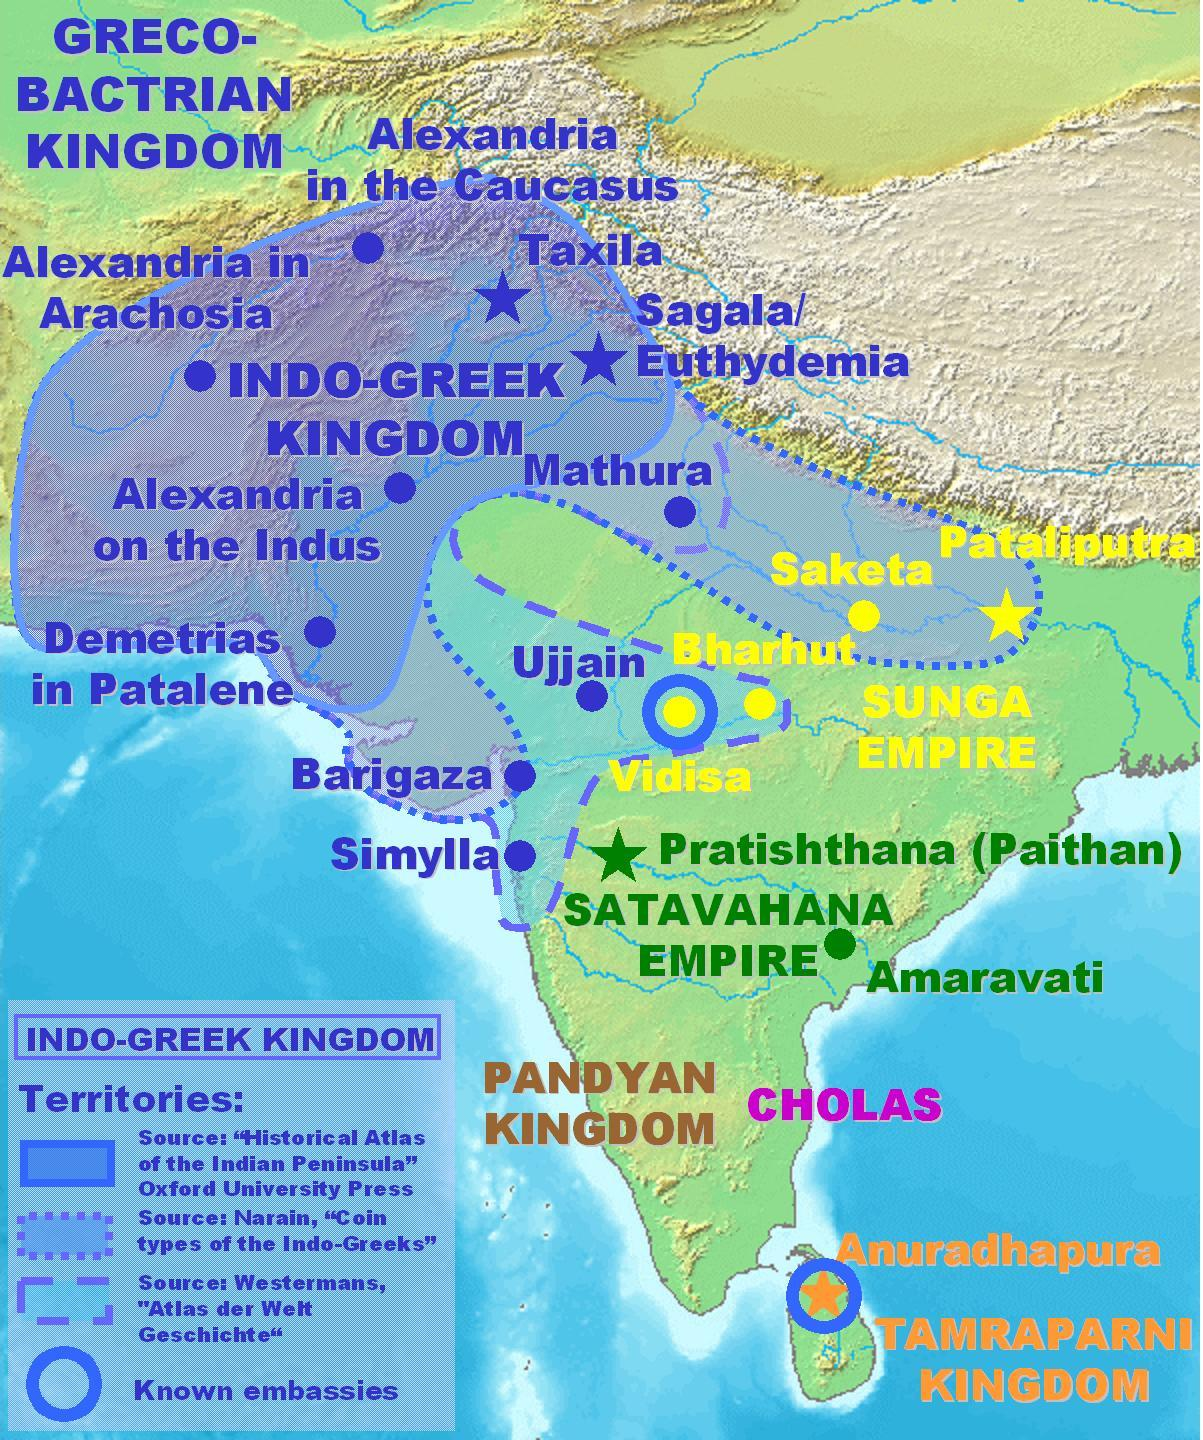 File:Indo-GreekWestermansNarain.jpg - Wikipedia, the free encyclopedia